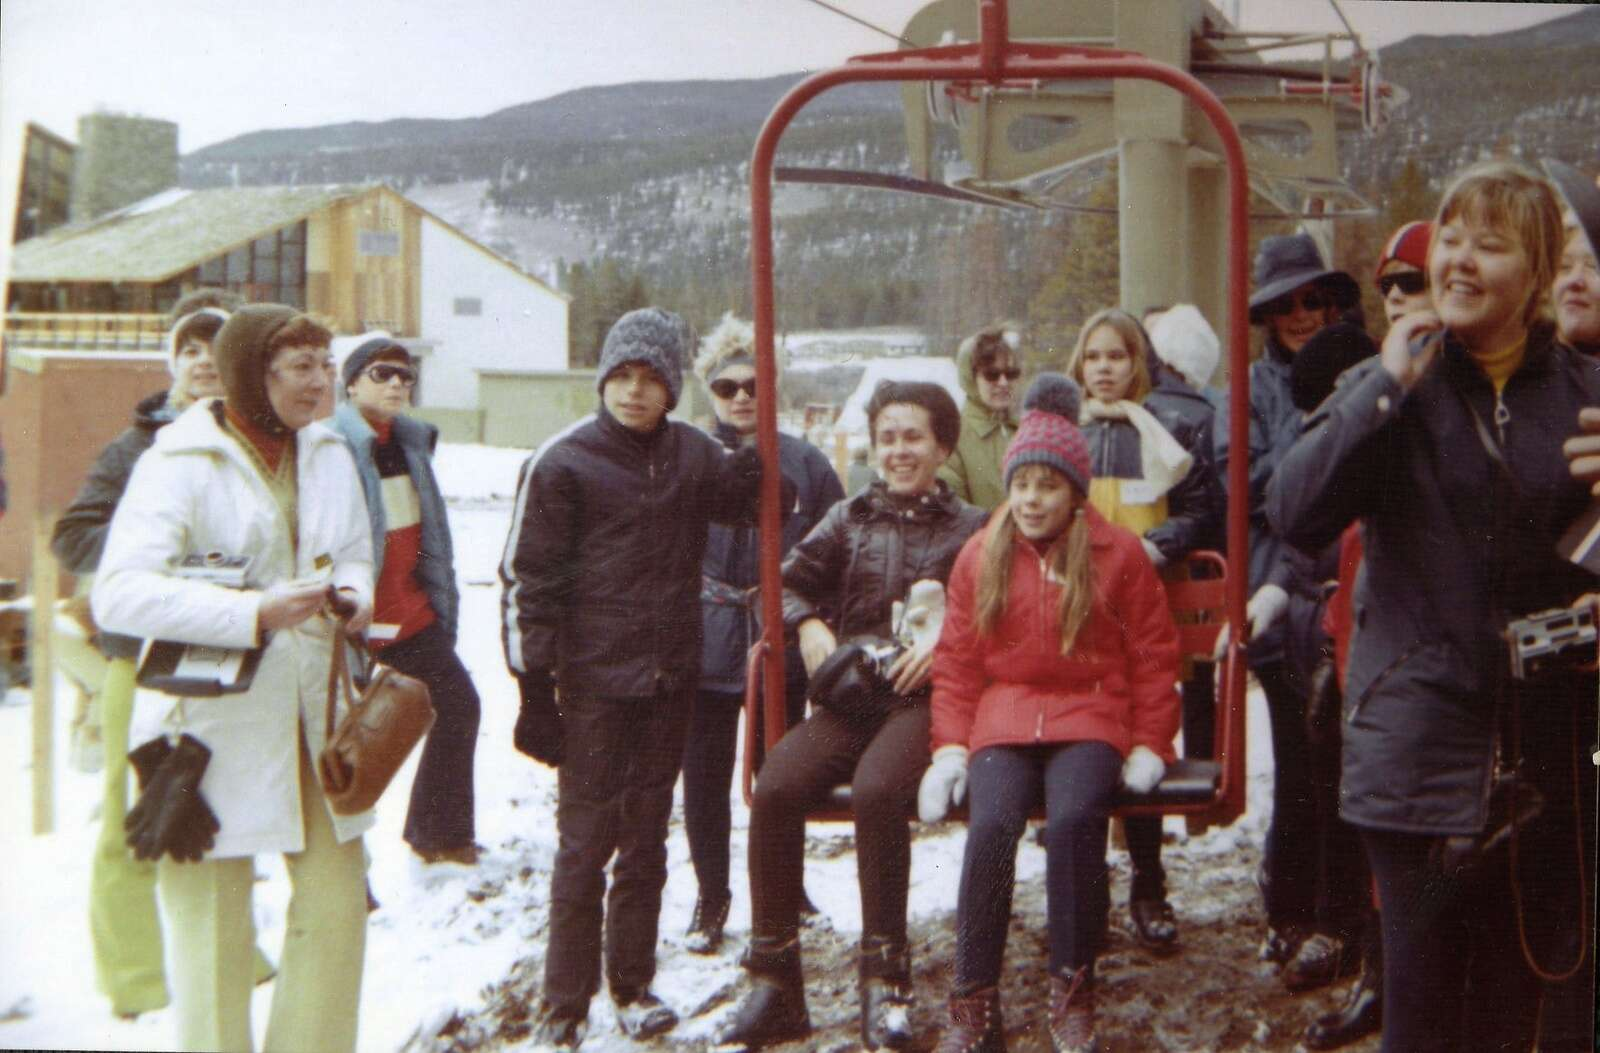 Skiers pose for a photo around the chairlift at Keystone Mountain Ski Area's grand opening Nov. 21, 1970. | Photo from the Bergman family